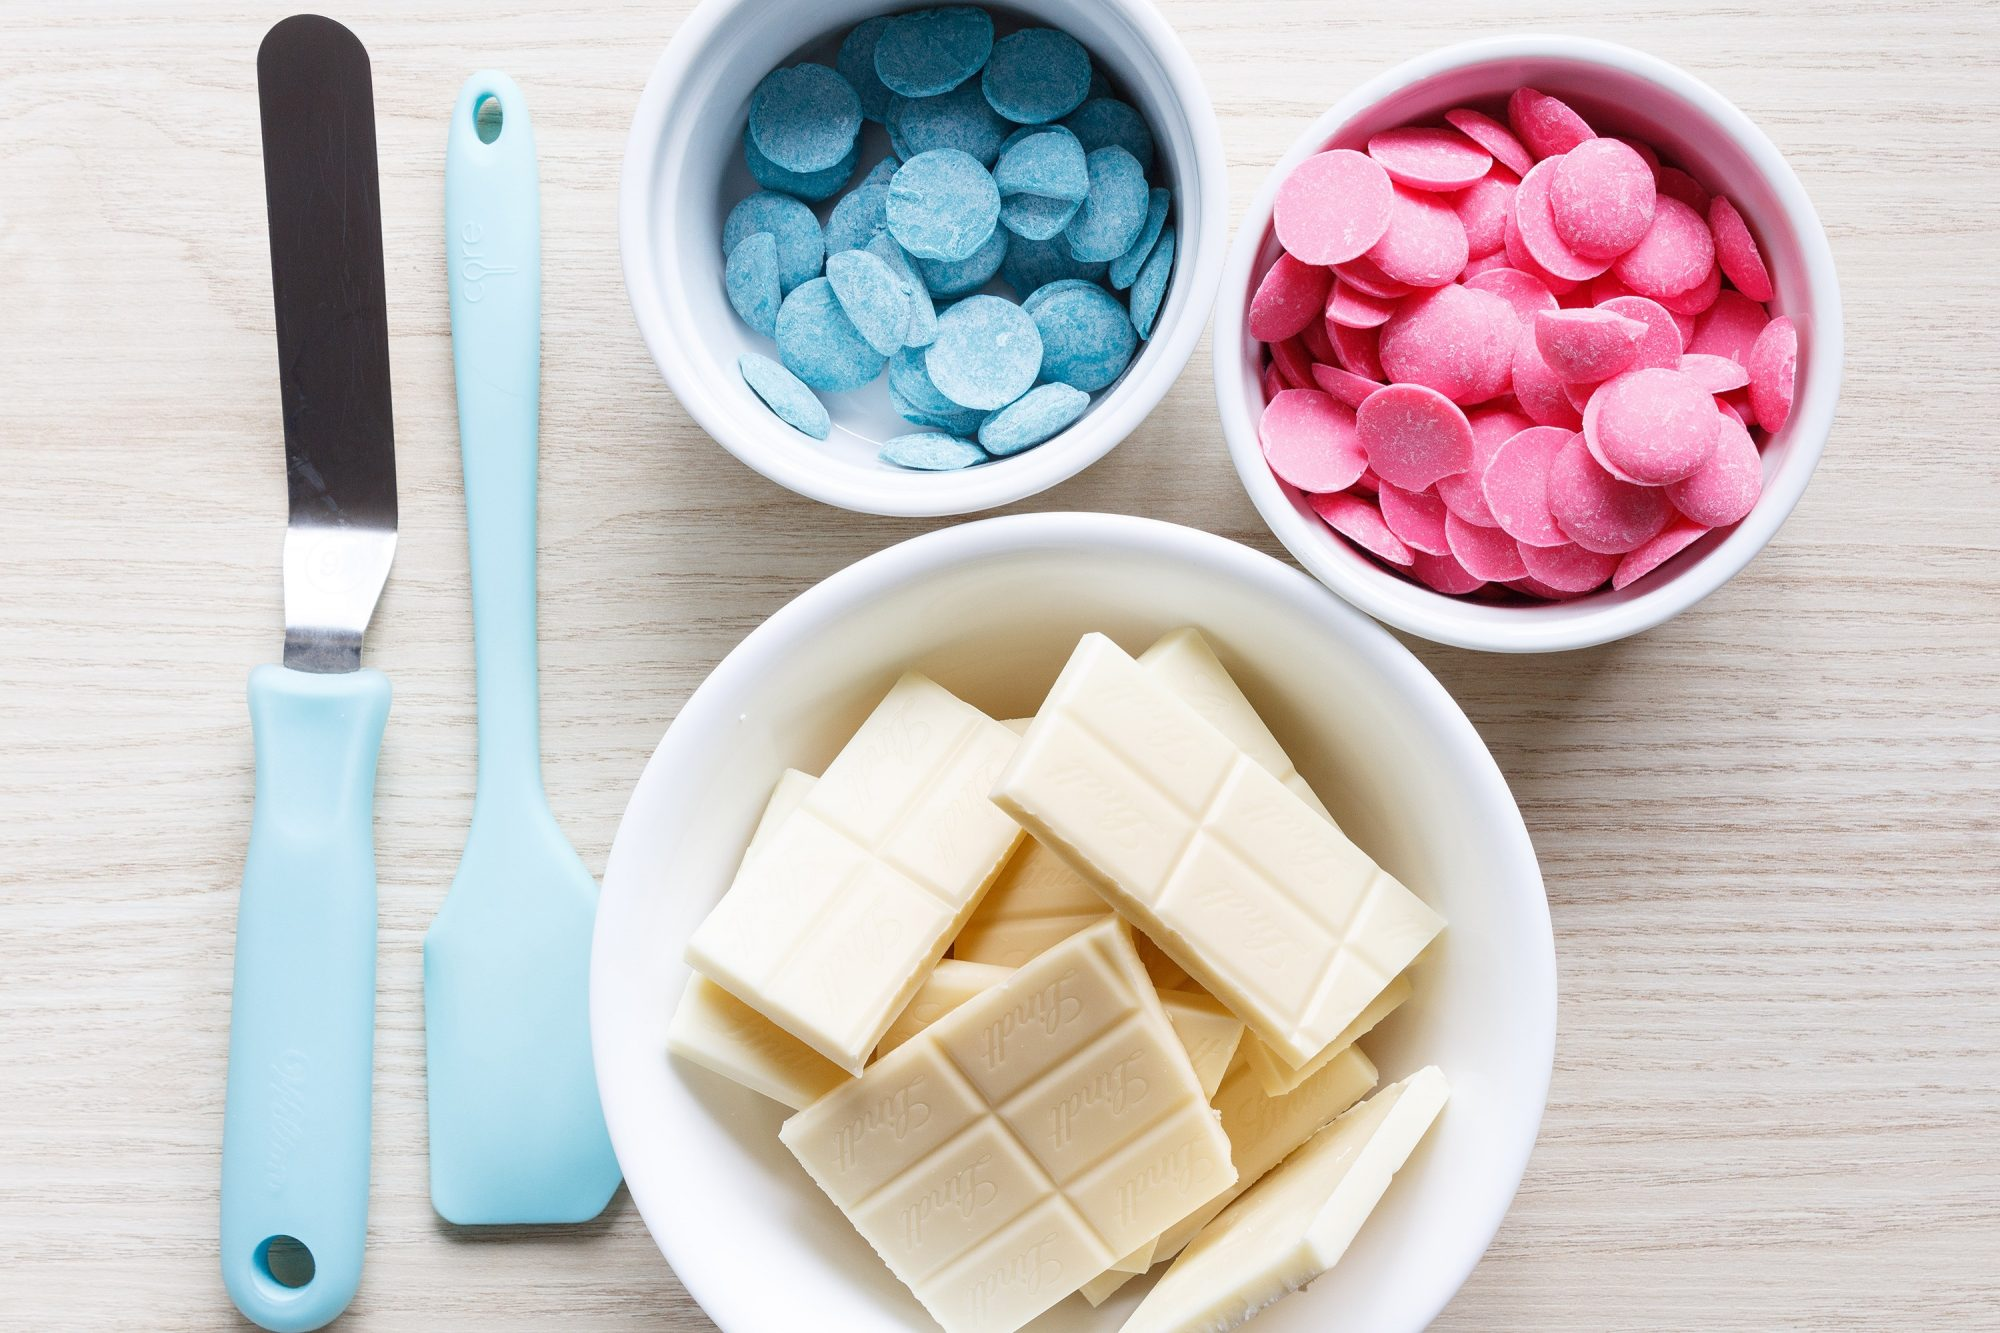 ingredients and tools to make unicorn bark: white chocolate, blue and pink candy wafers, bowls, spatulas